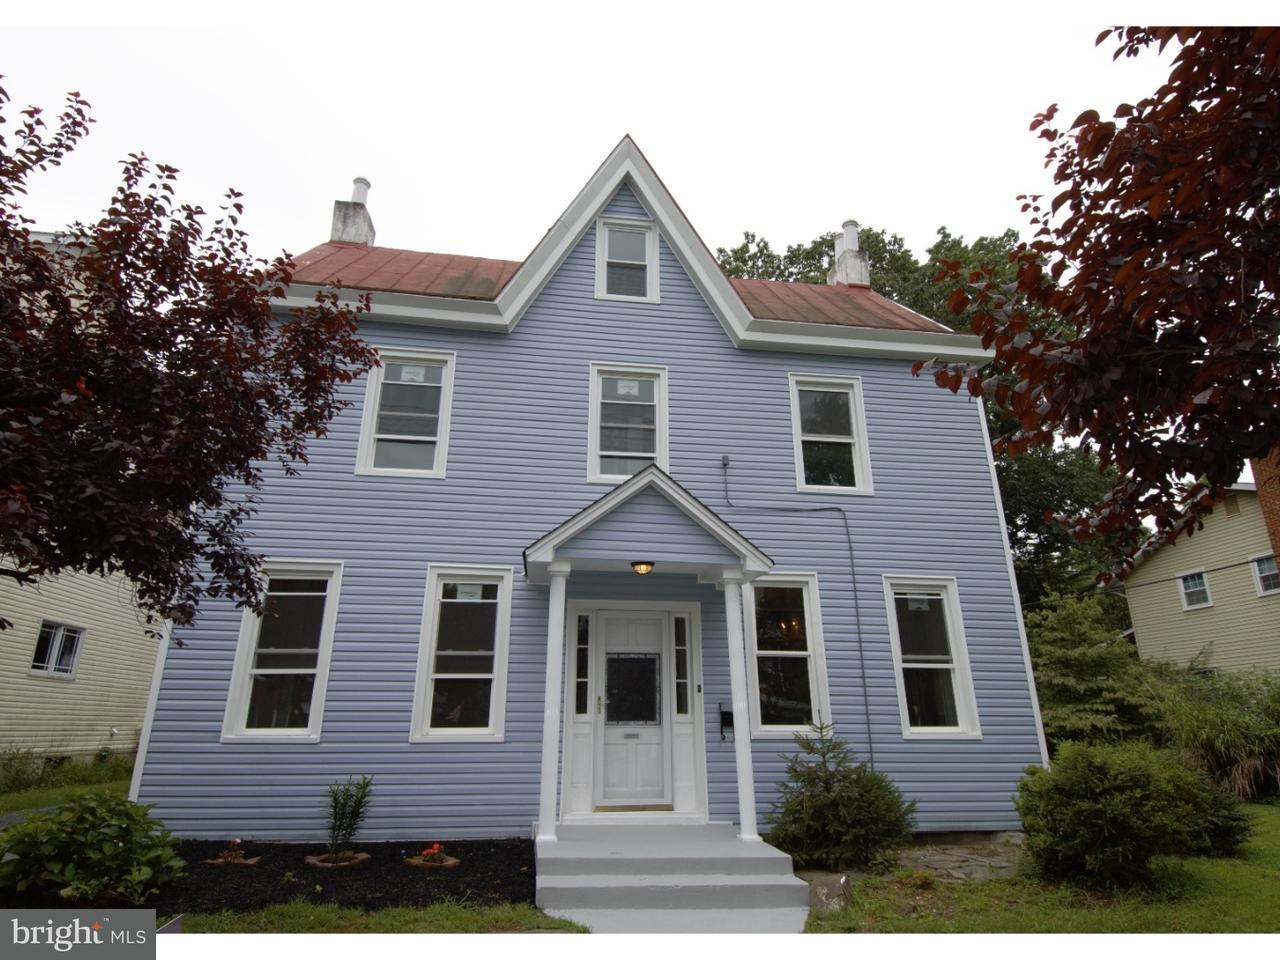 Single Family Home for Sale at 44 WARREN Street Beverly, New Jersey 08010 United States